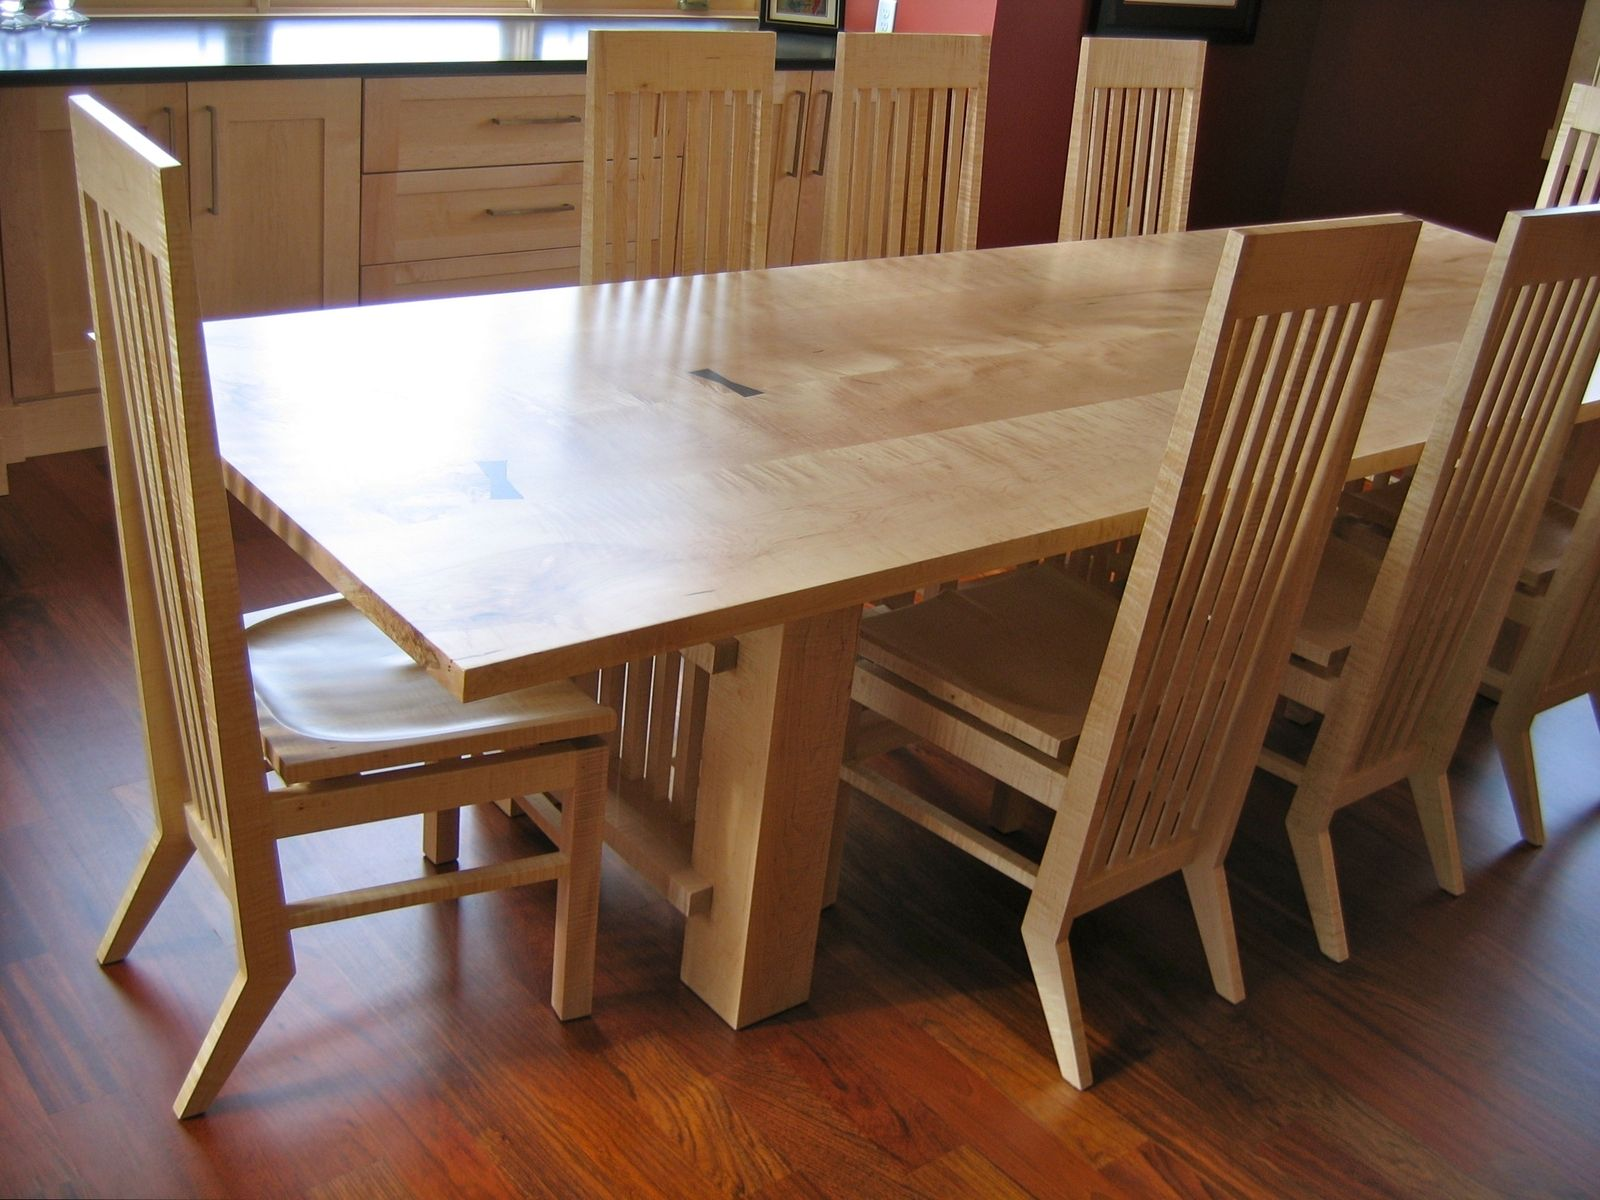 Hand Crafted Maple Dining Table by David Naso Designs | CustomMade.com